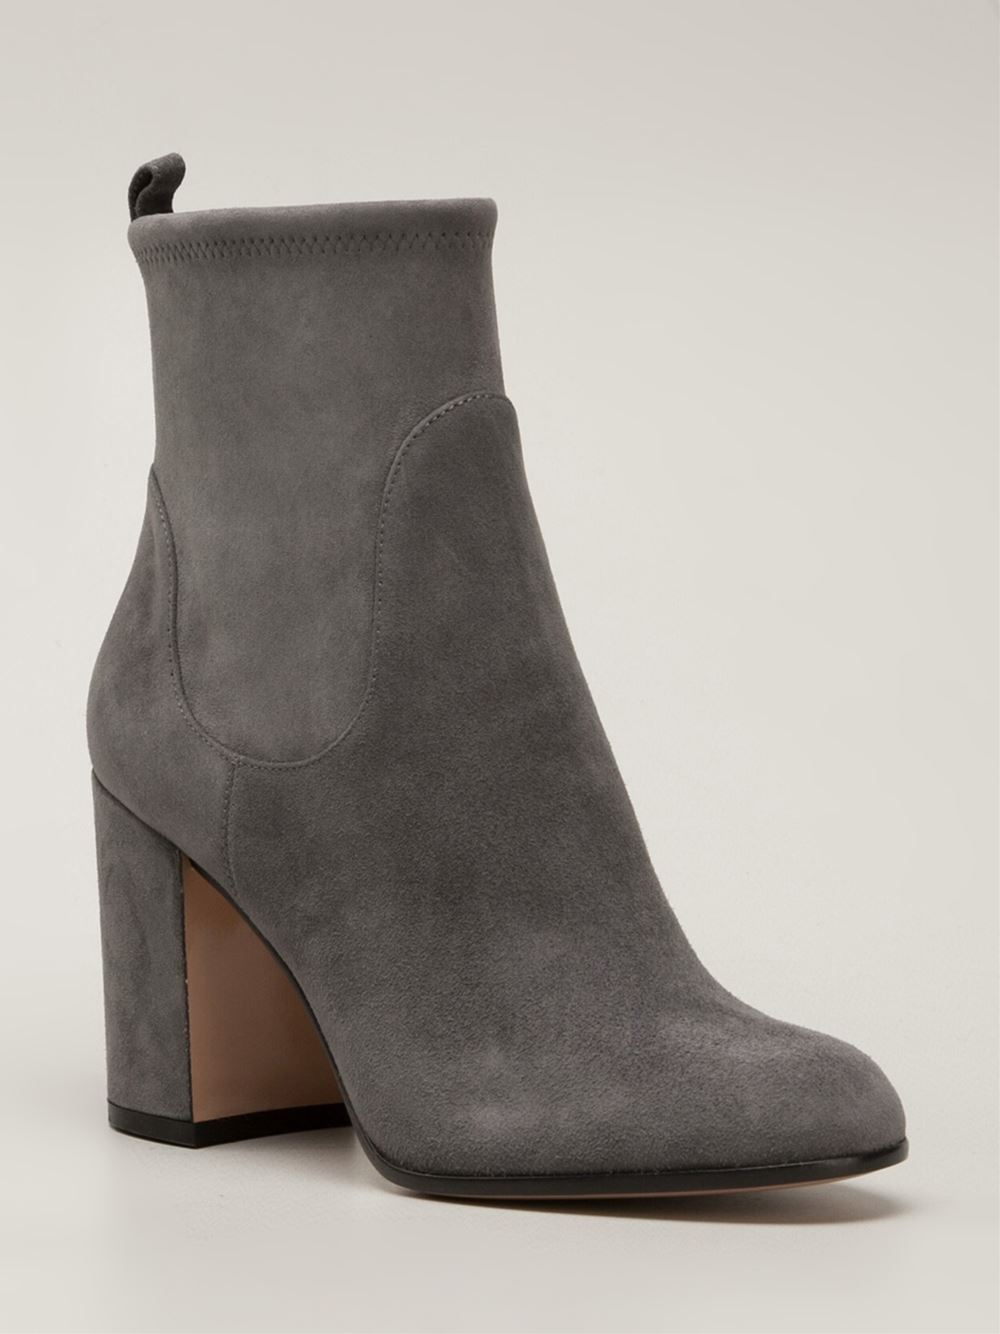 gianvito rossi ankle boots in gray grey lyst. Black Bedroom Furniture Sets. Home Design Ideas